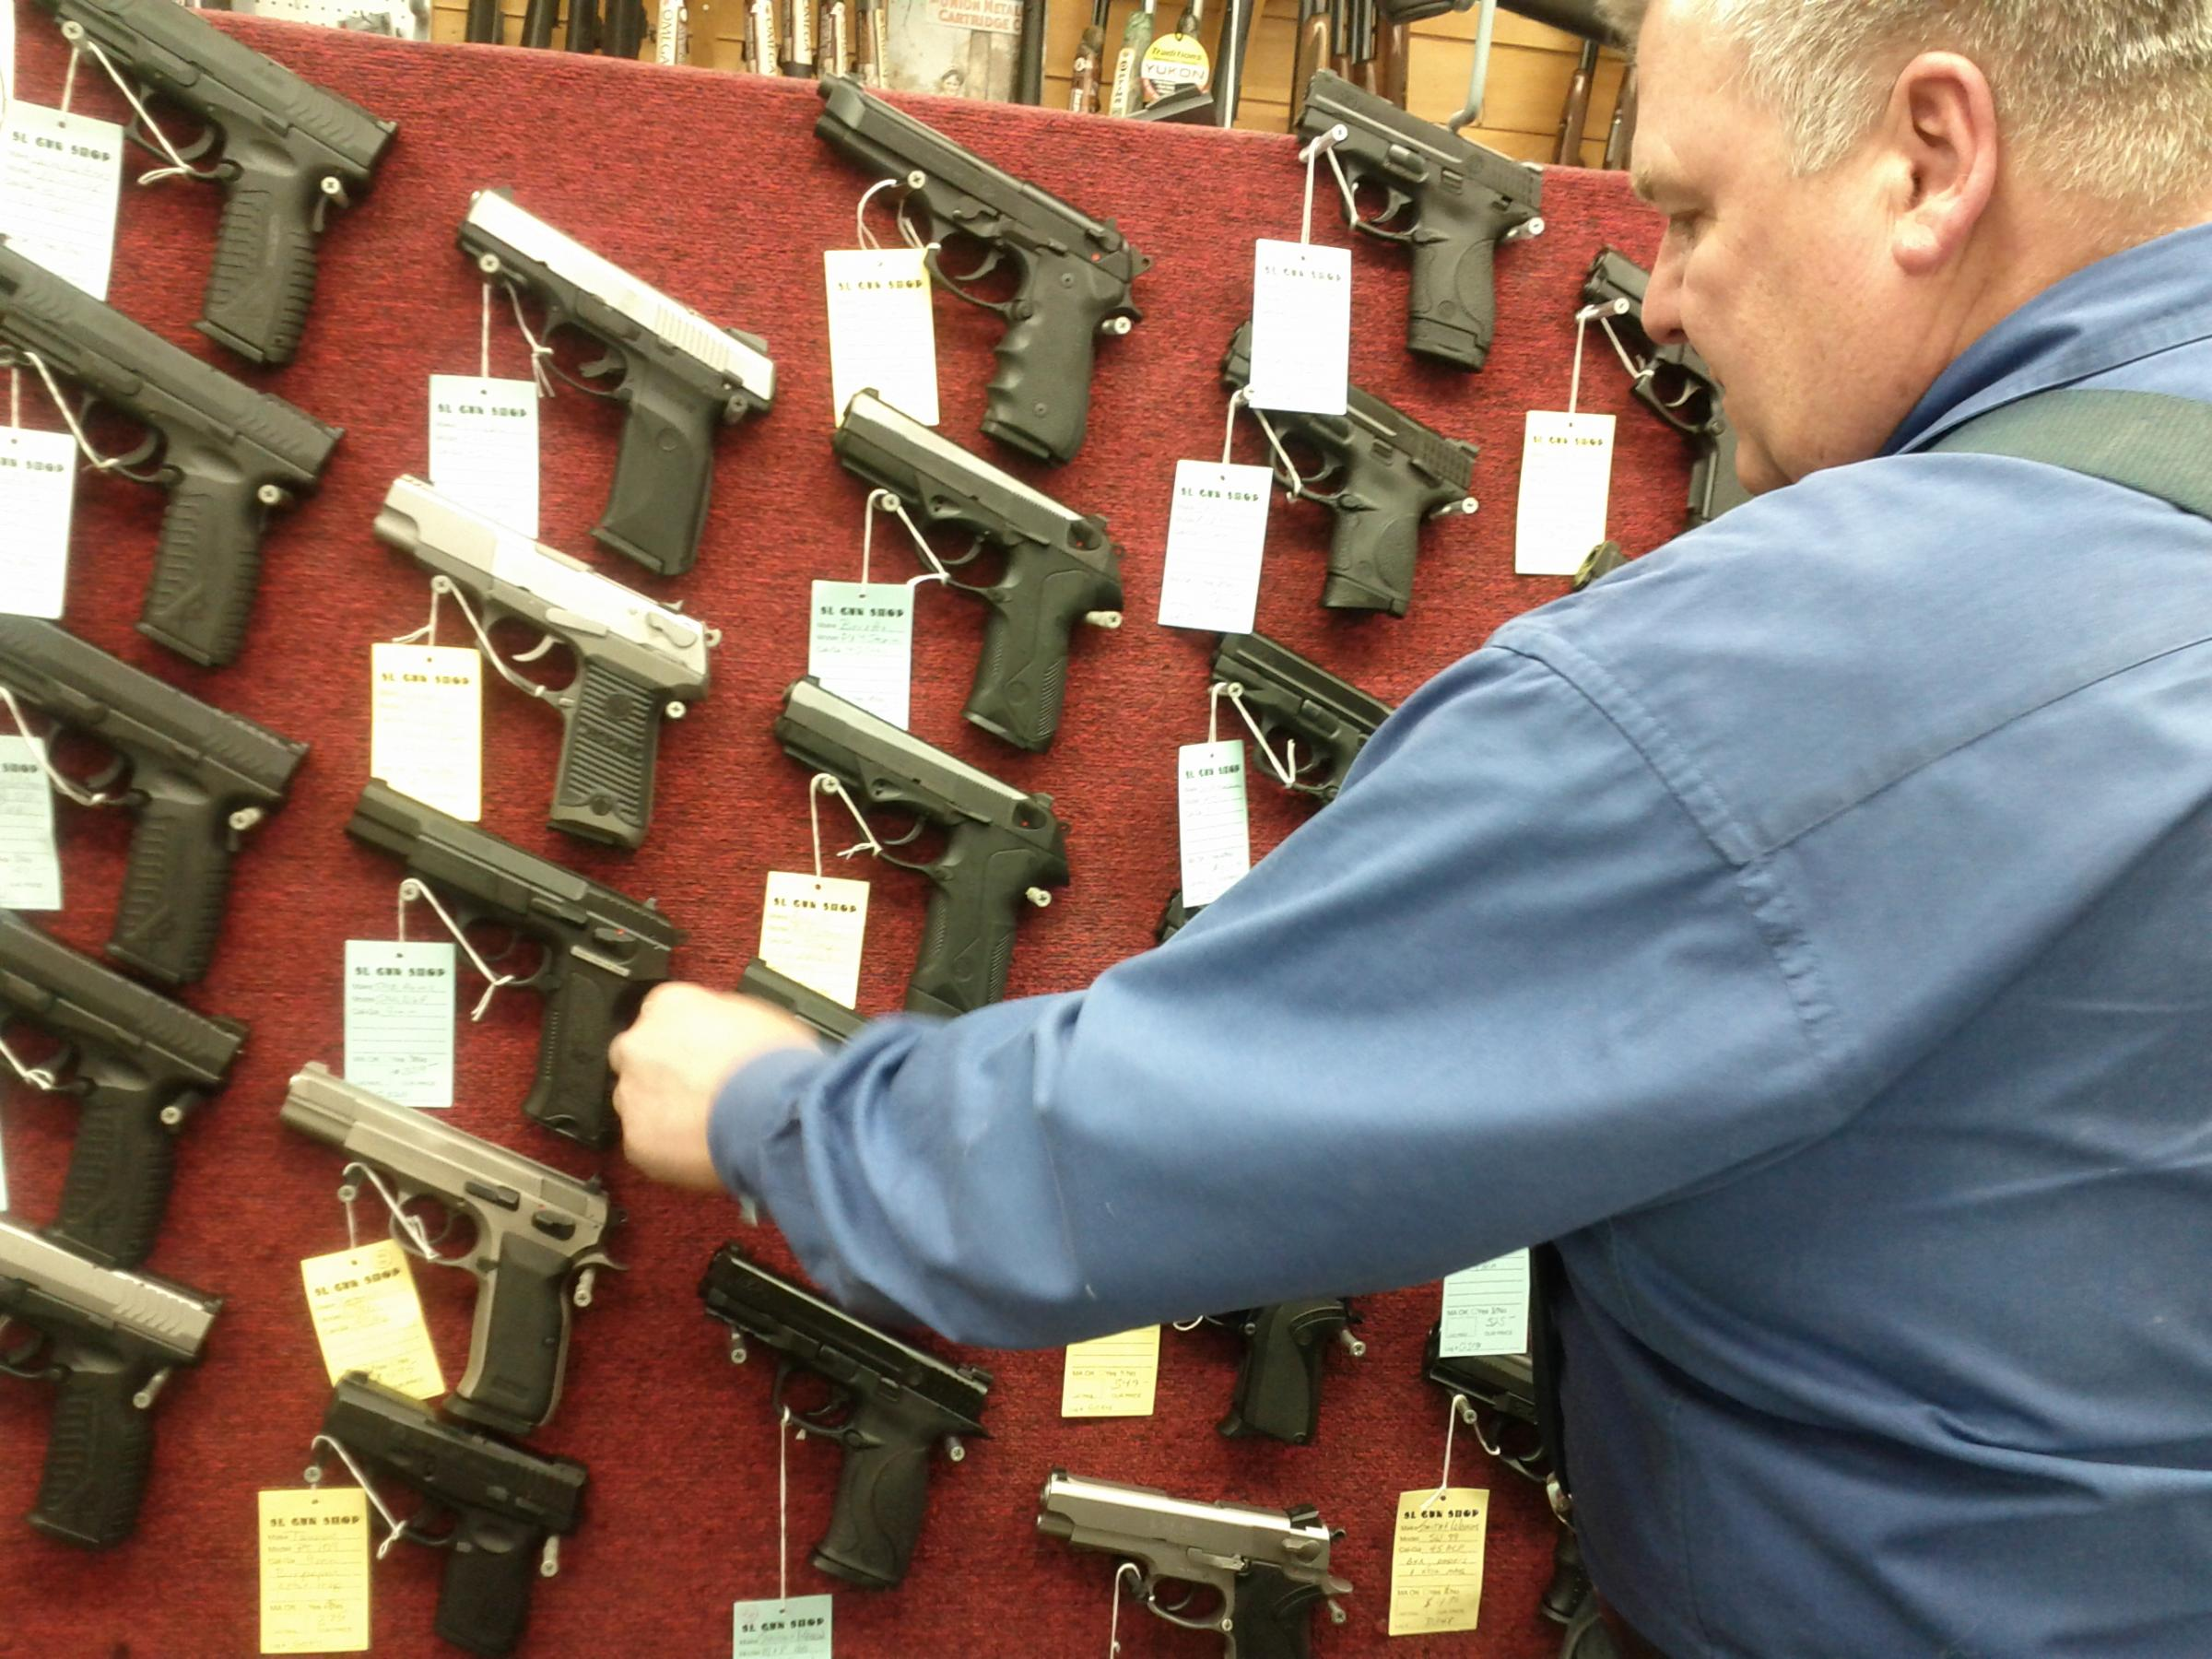 Gun Buyers Face Few Restrictions In NH New Hampshire Public Radio - Invoice sample word format cheapest online gun store